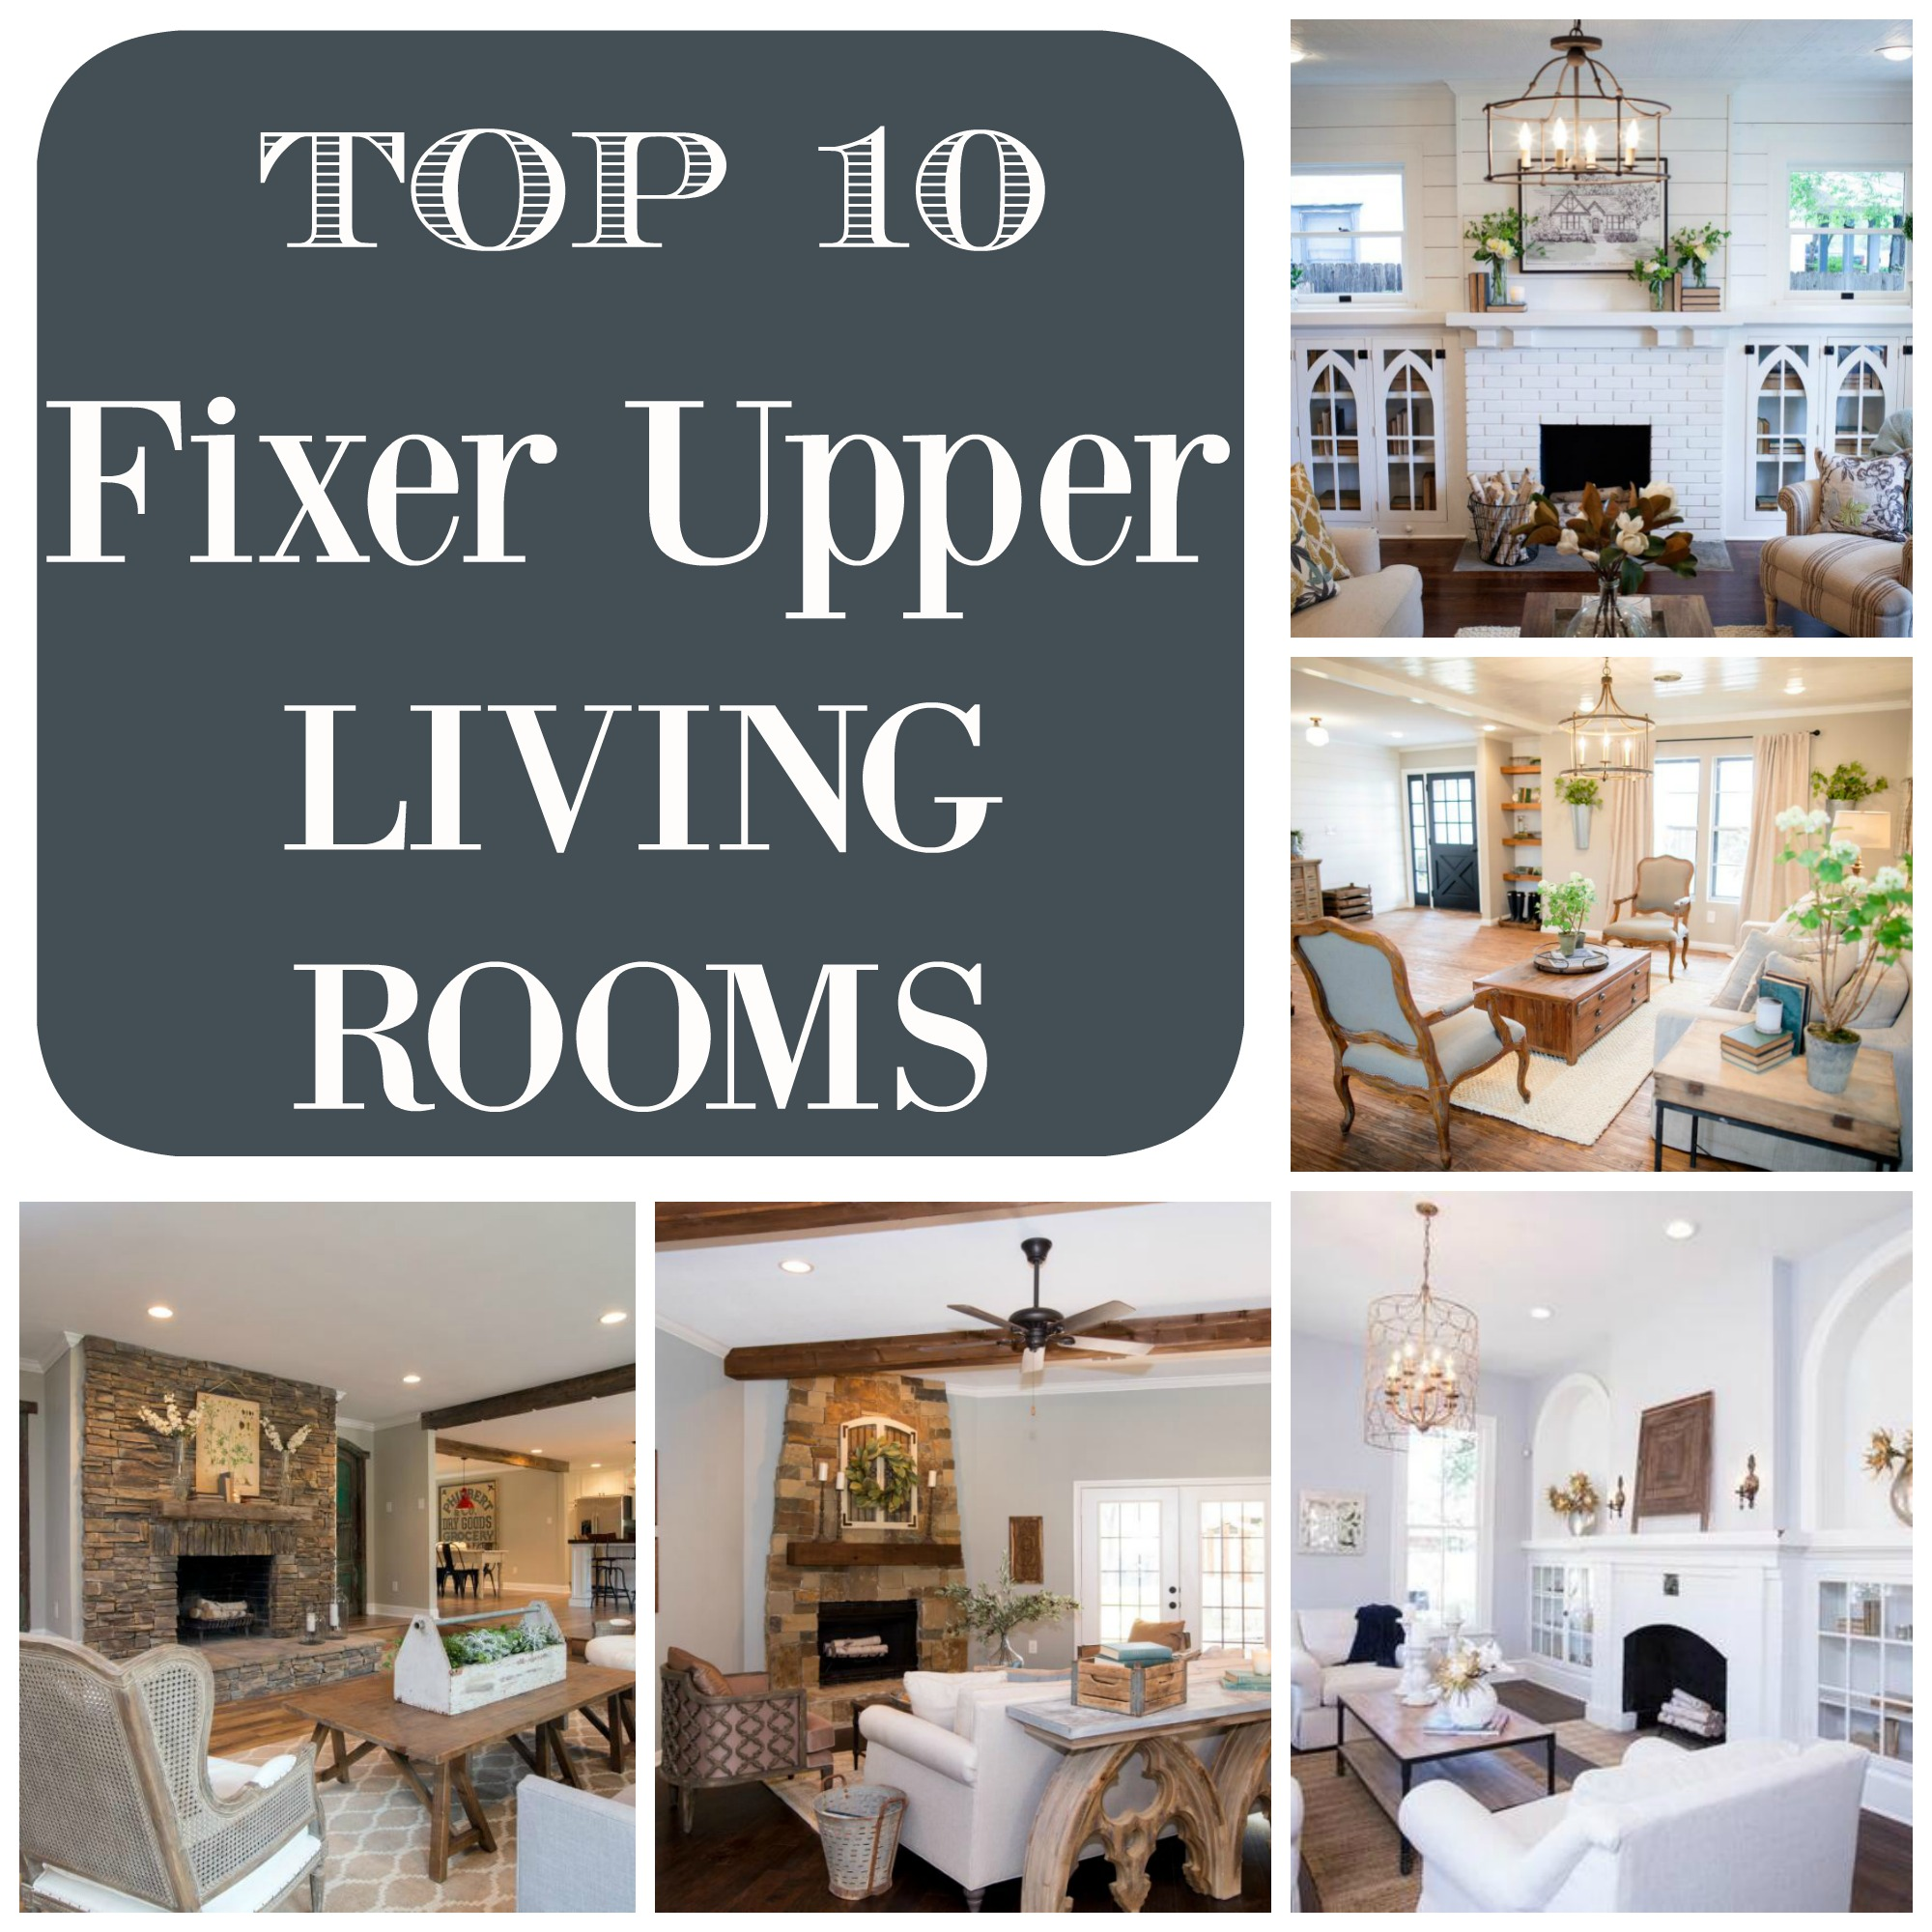 Facebook Wohnzimmer Live Top 10 Fixer Upper Living Rooms Daily Dose Of Style